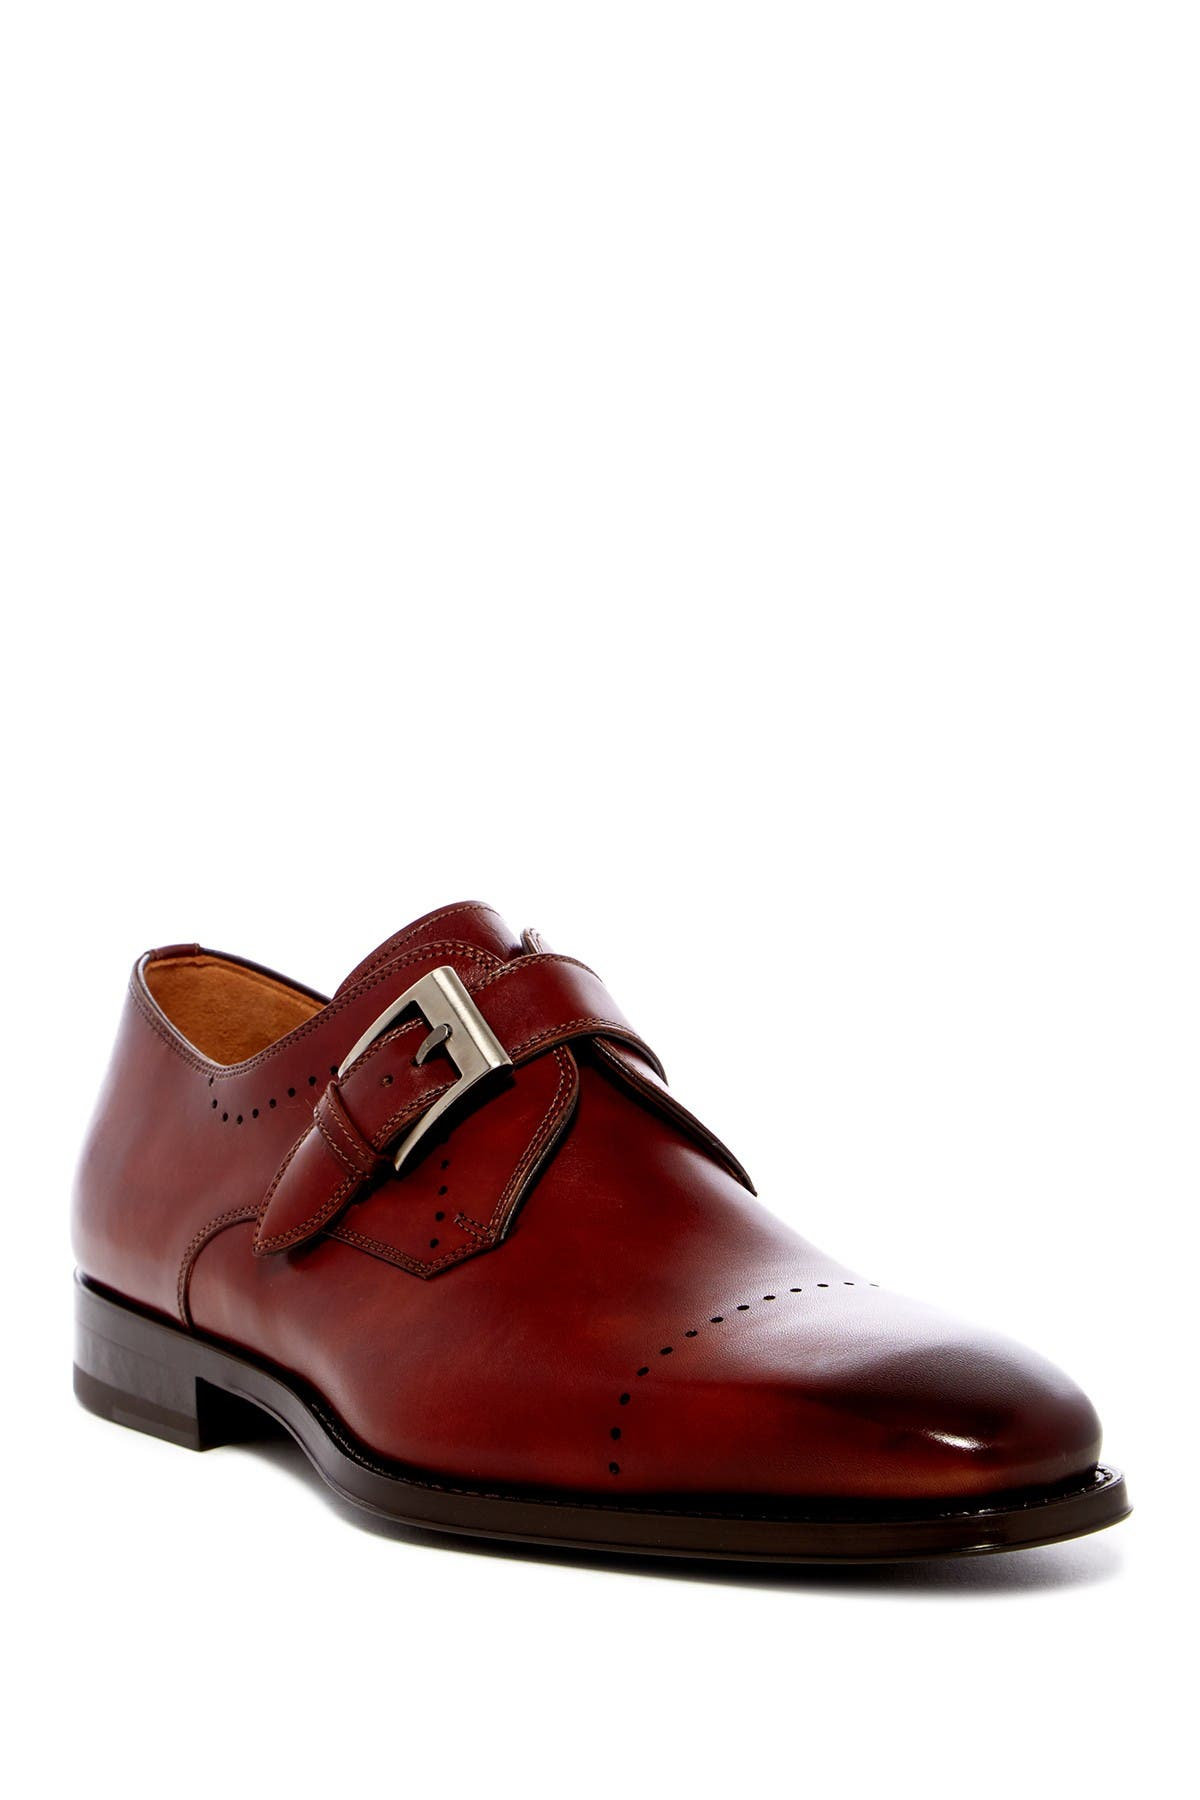 Image of Magnanni Carey Monk Strap Loafer